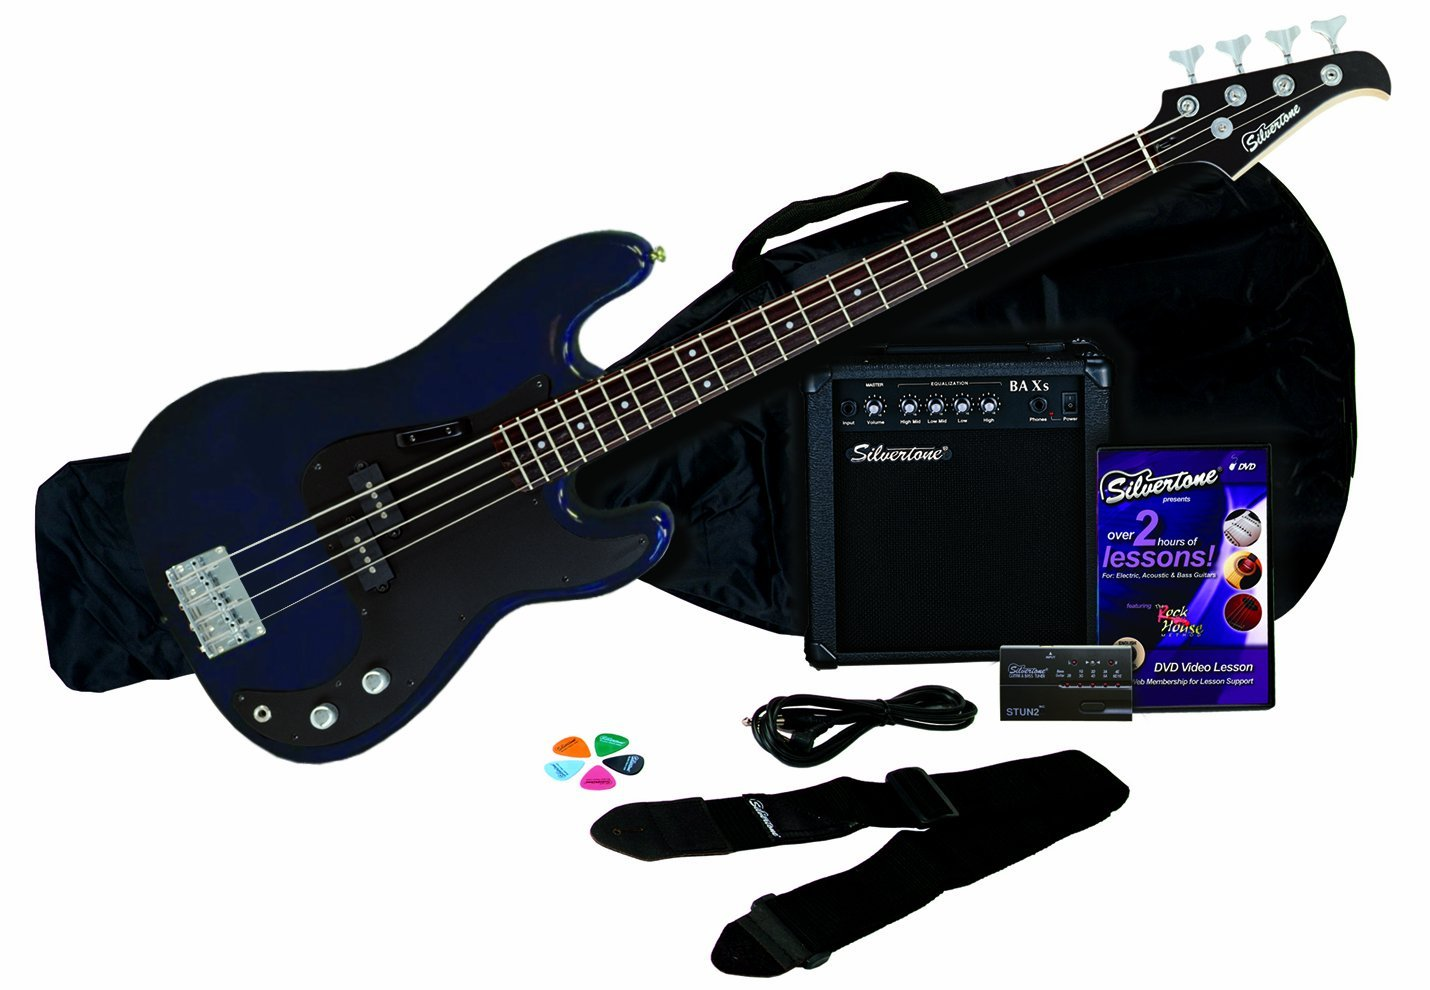 silvertone lb11 bass and amp package review best guitars hub. Black Bedroom Furniture Sets. Home Design Ideas